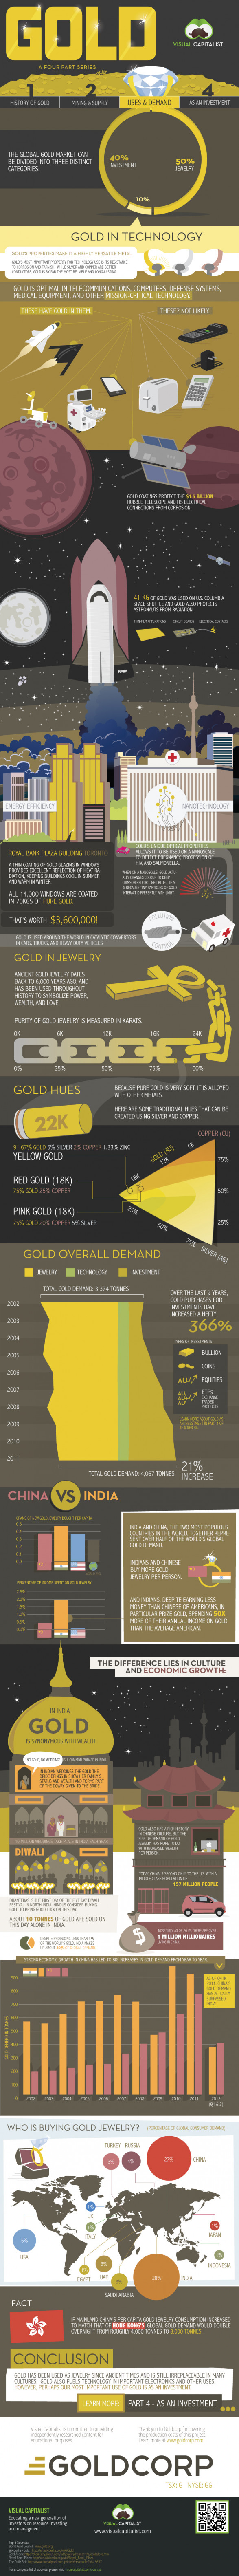 Gold Part III: Uses and Demand